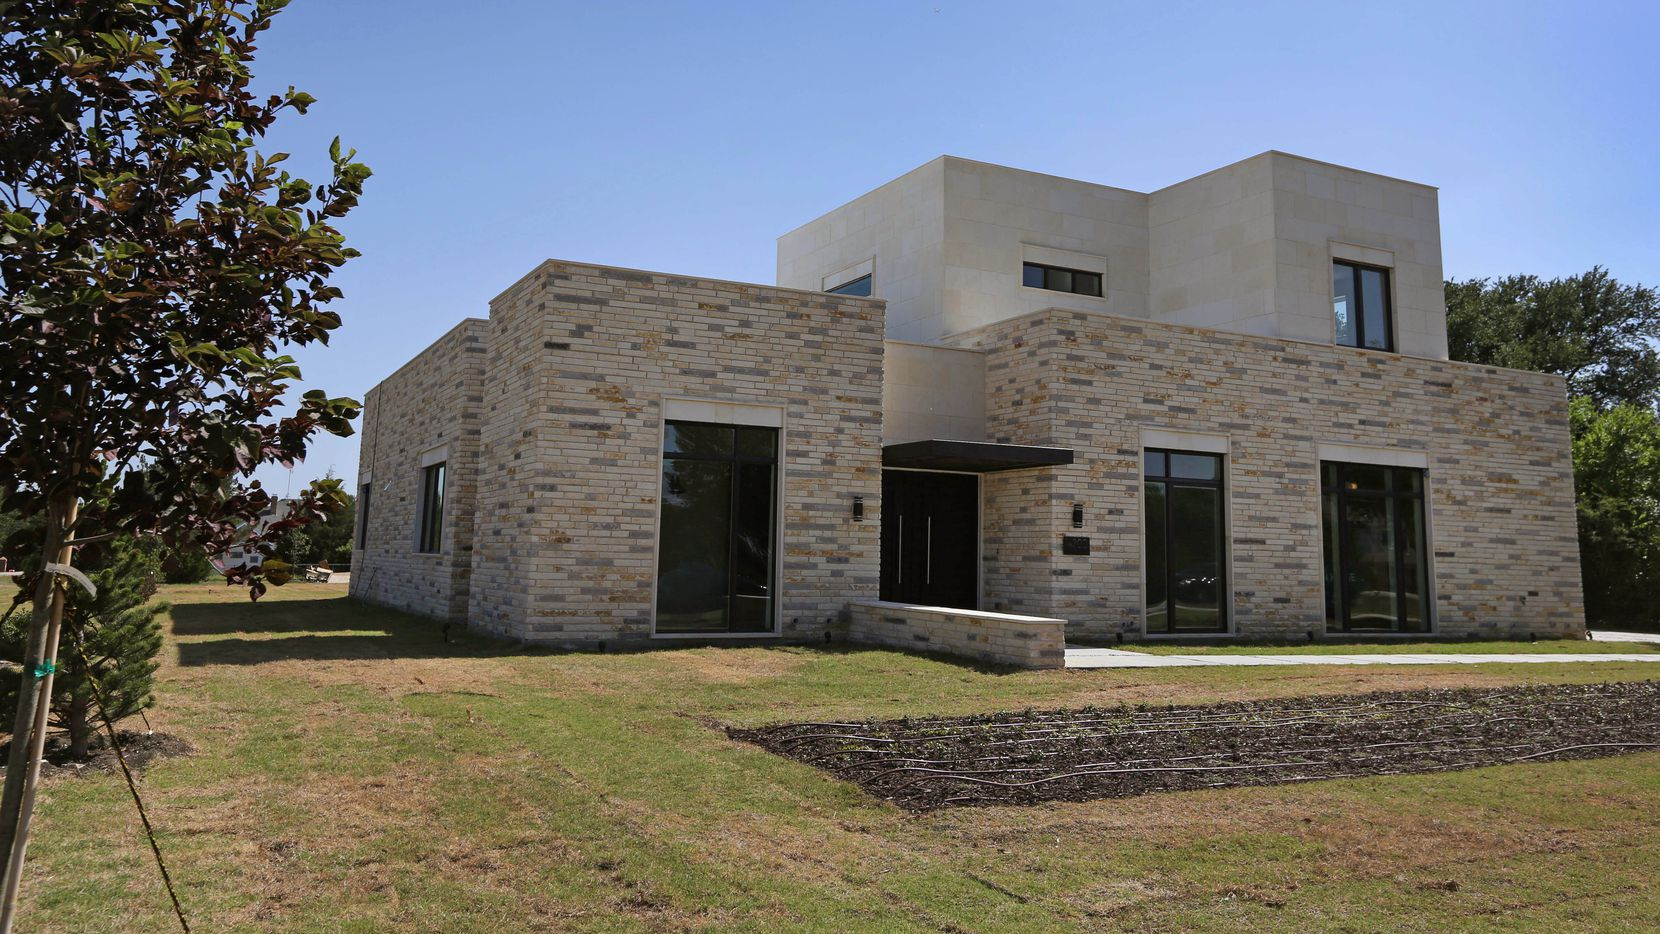 UT grad creates 'Texas modern' house design that doesn't ... Award Winning Modern Texas House Plans on best open floor plans, award winning home plans, traditional house plans, ghana building plans, great texas house plans, drees floor plans, historic townhouse plans, texas style house plans, simple texas house plans, beautiful architectural house plans, west african house plans, old texas house plans, hill country house plans, rear garage house plans, best texas house plans, texas hill country plans, new 4 bedroom home plans, ranch house plans, energy house plans,